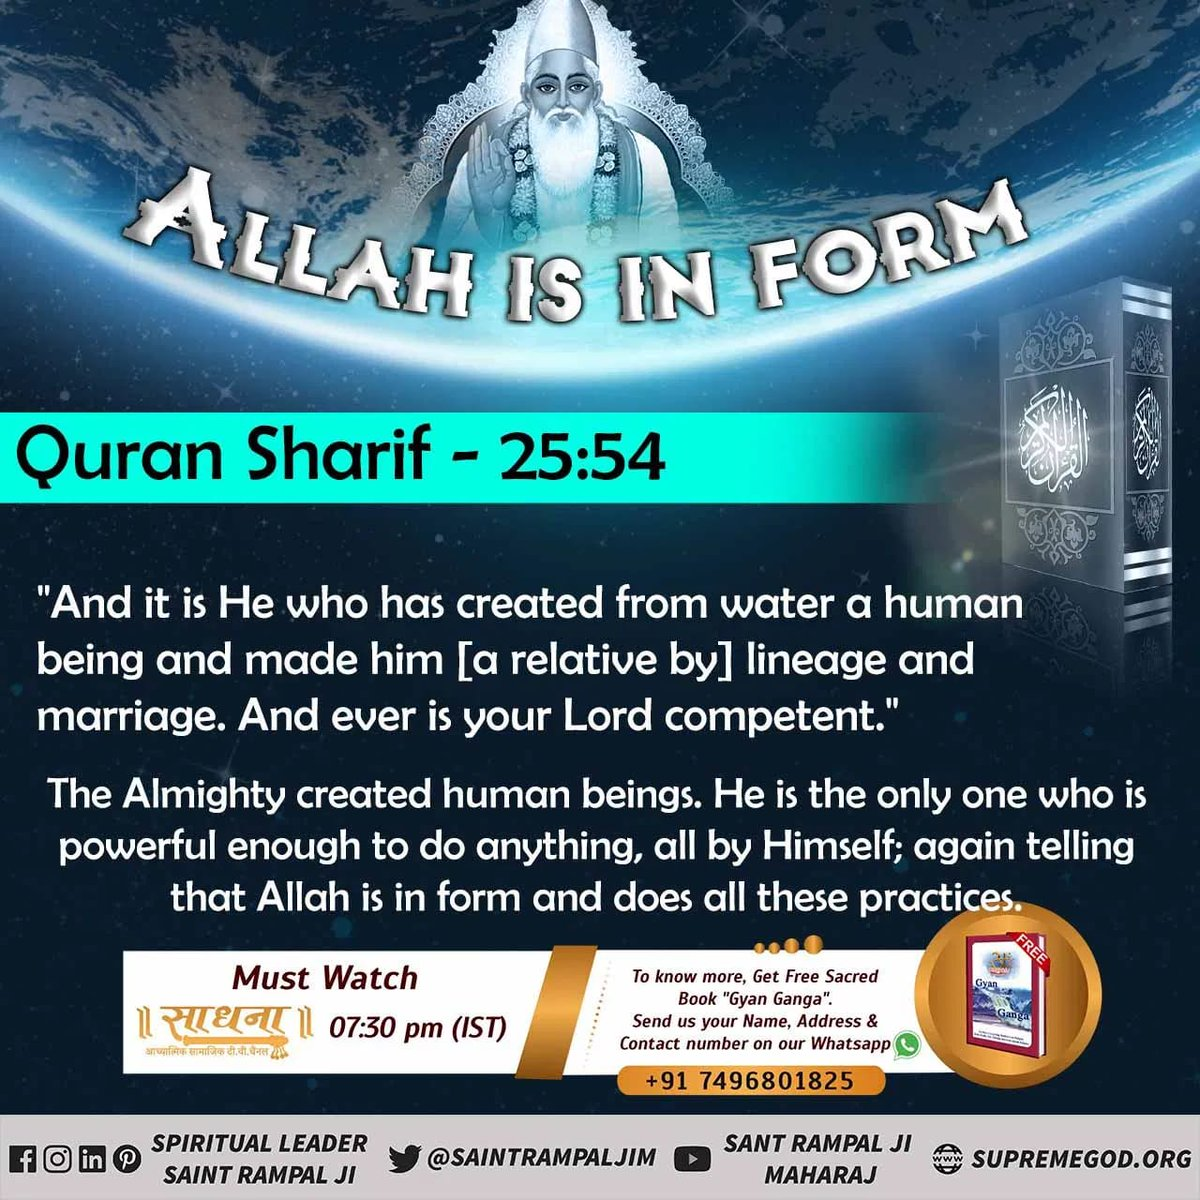 #MondayMotivation  GOD IS IN FORM  Holy Bible  also proves that God made human beings, He made them like Himself. It means that God Is In Form. Baakhabar Saint Rampal Ji Maharaj Visit Satlok Ashram YouTube Channel Must Watch Shraddha tv-2:00pm  Allah Kabir